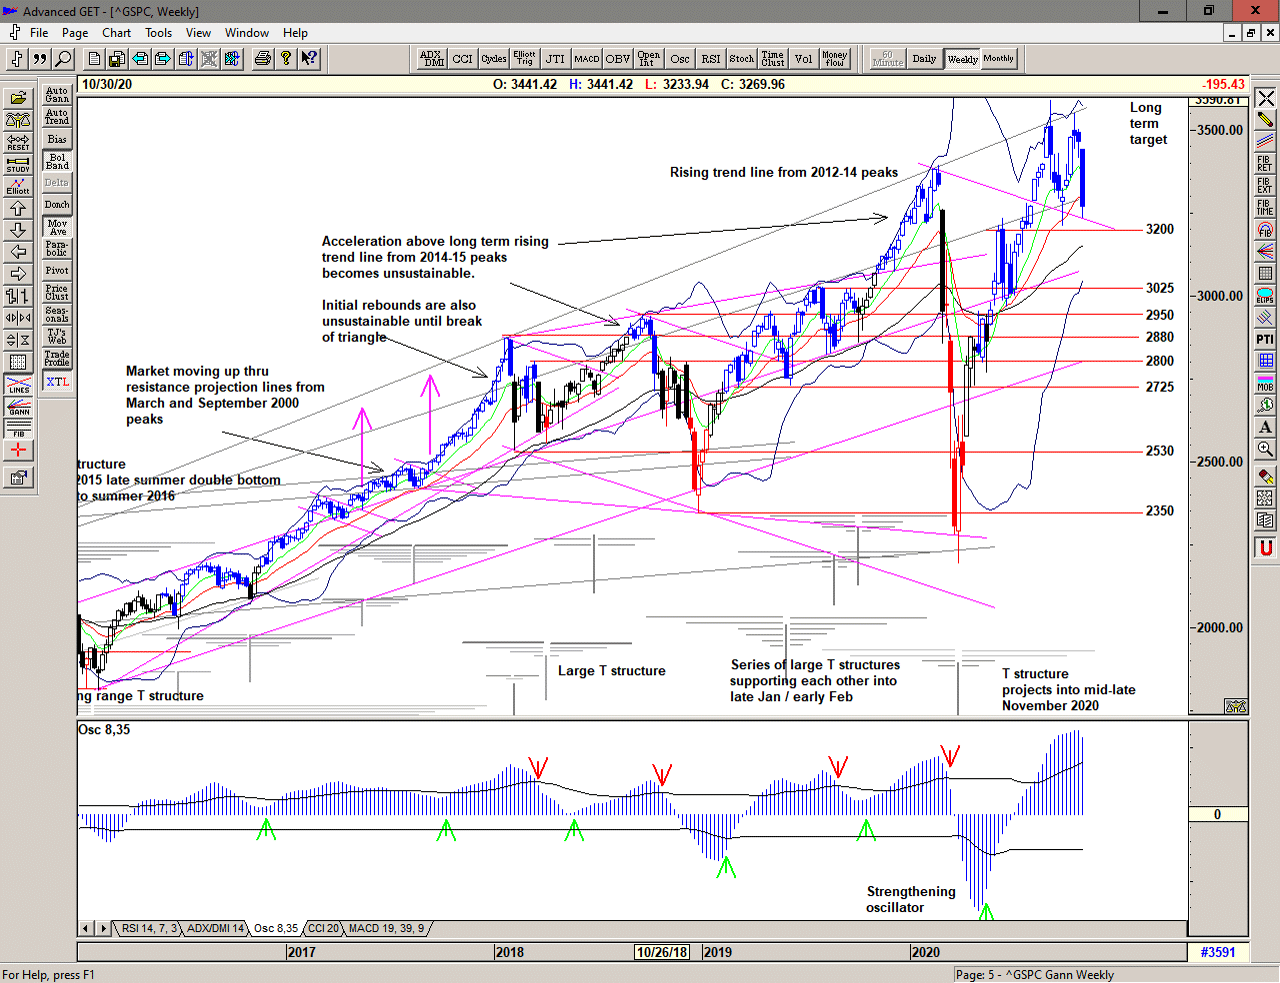 Weekly chart of S&P 500 for 31 October 2020